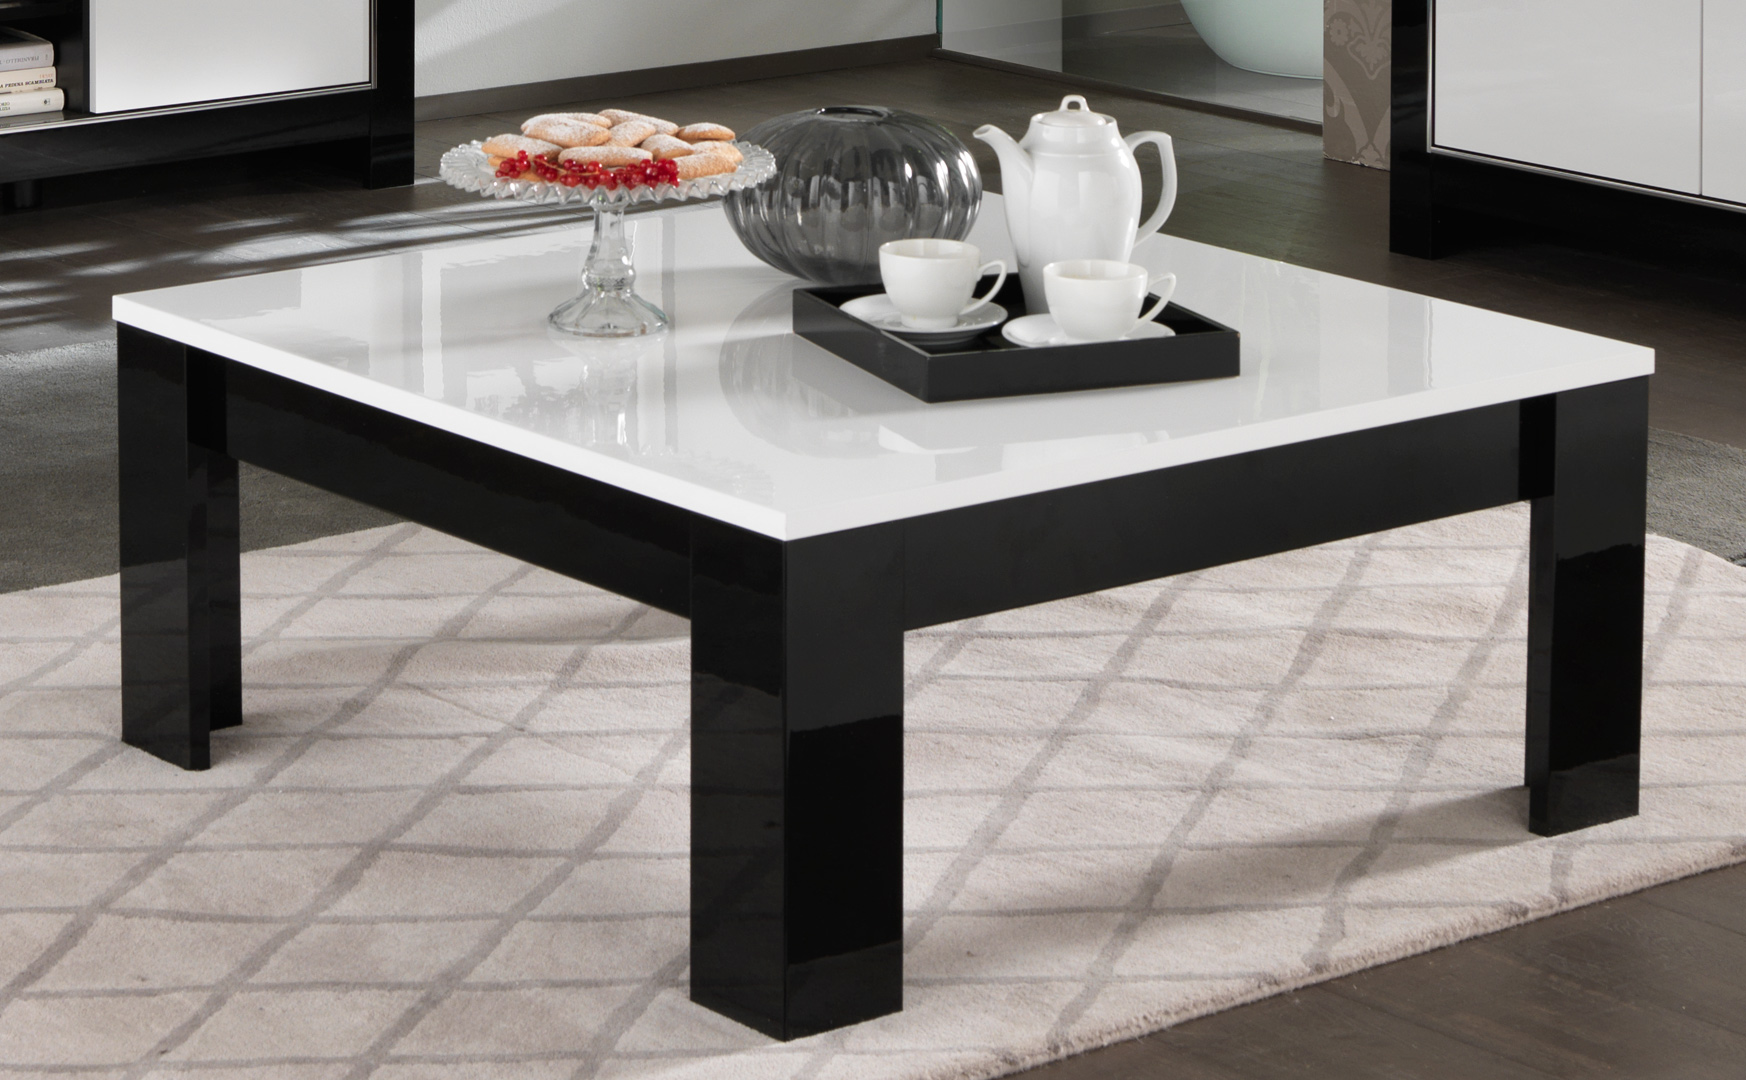 table basse carr e design laqu e blanc noir savana matelpro. Black Bedroom Furniture Sets. Home Design Ideas